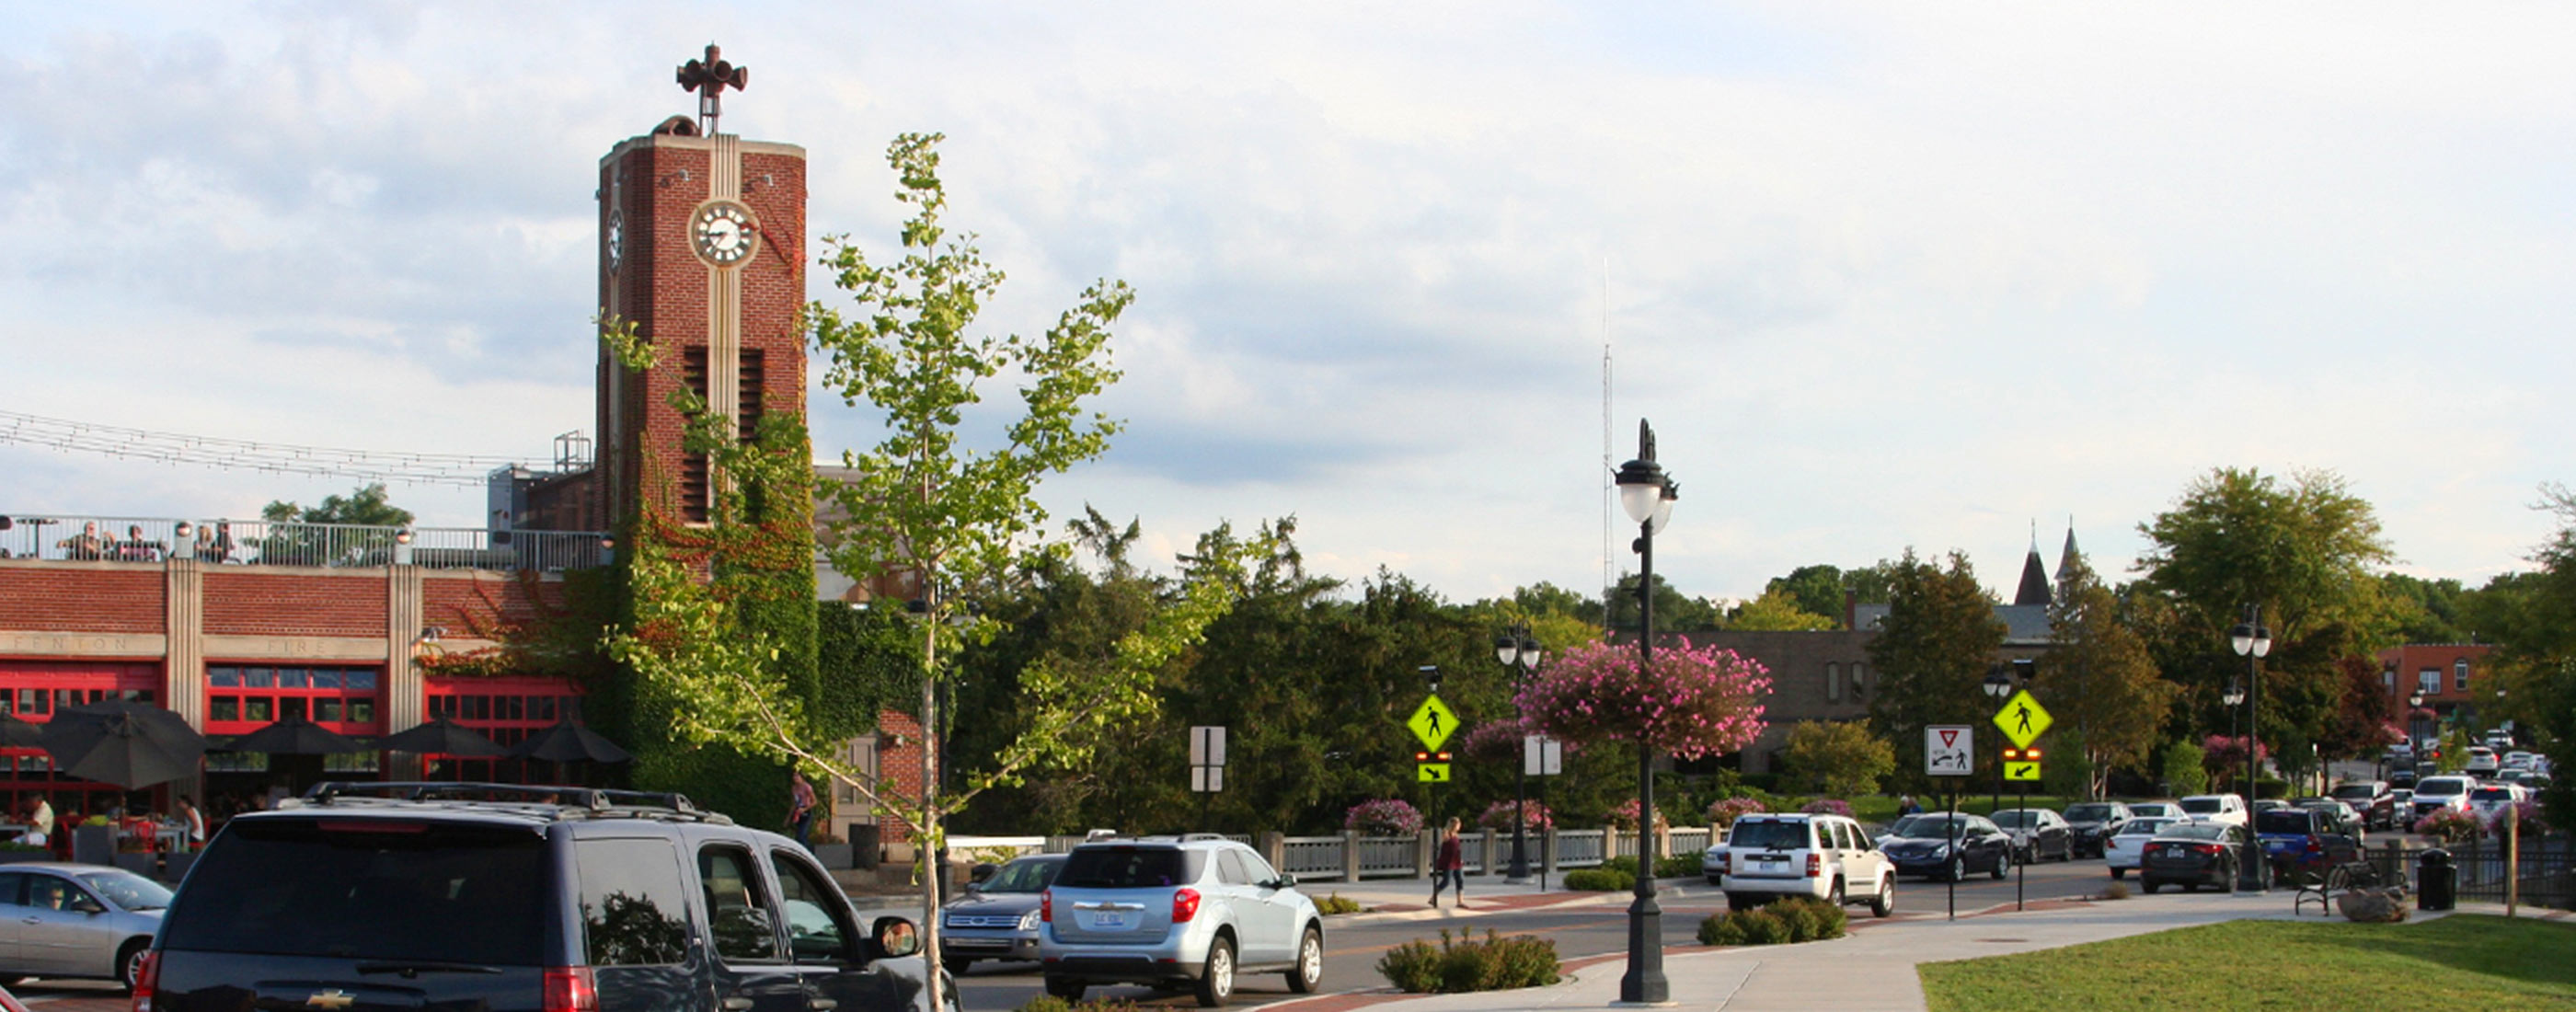 Fenton, Michigan's downtown streetscape and road rehabilitation project, led by OHM Advisors, addressed both pedestrian and parking needs.